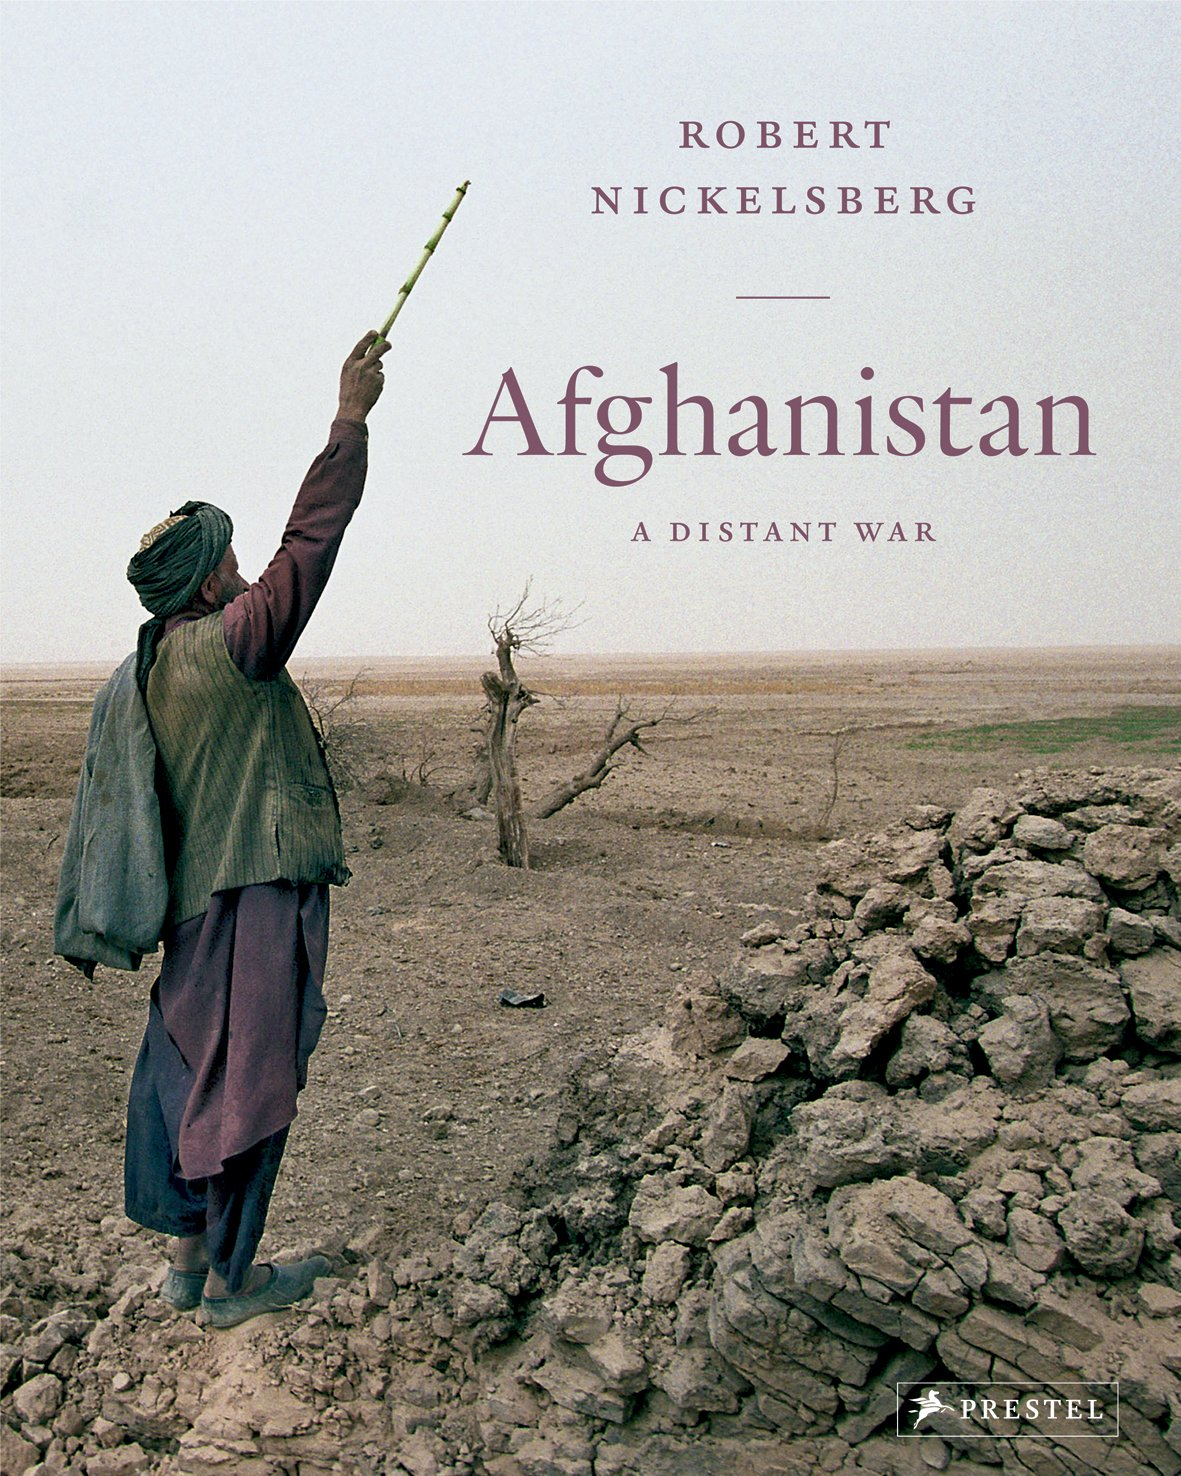 Book cover, Afghanistan a distant war by Robert Nickelsberg.